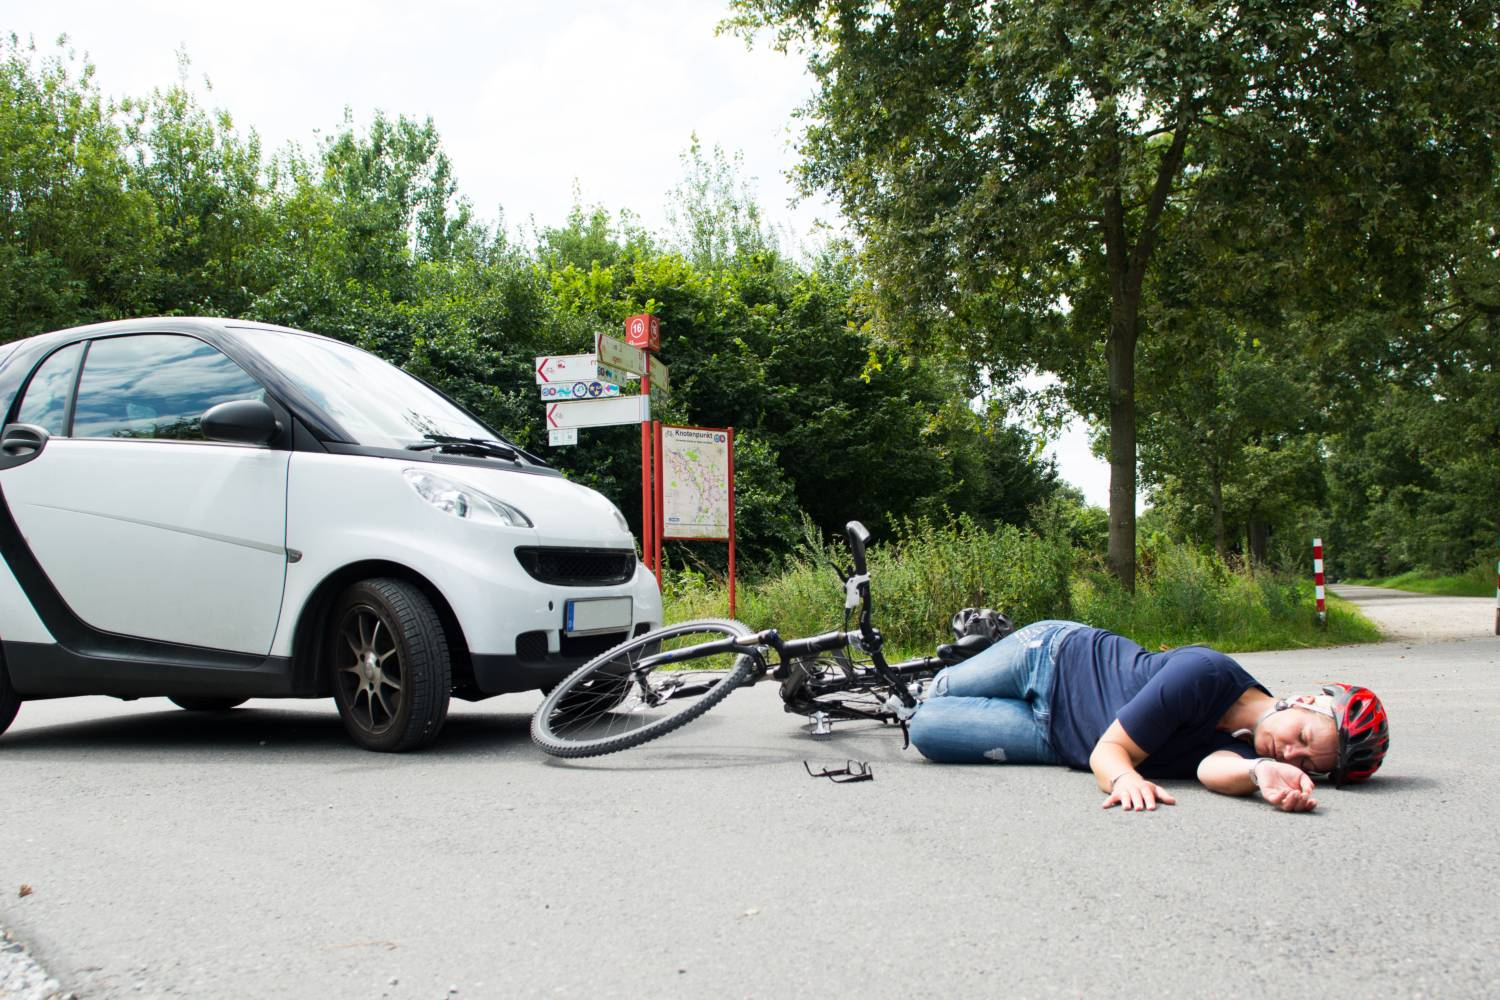 Road accidents - What to do and how to help